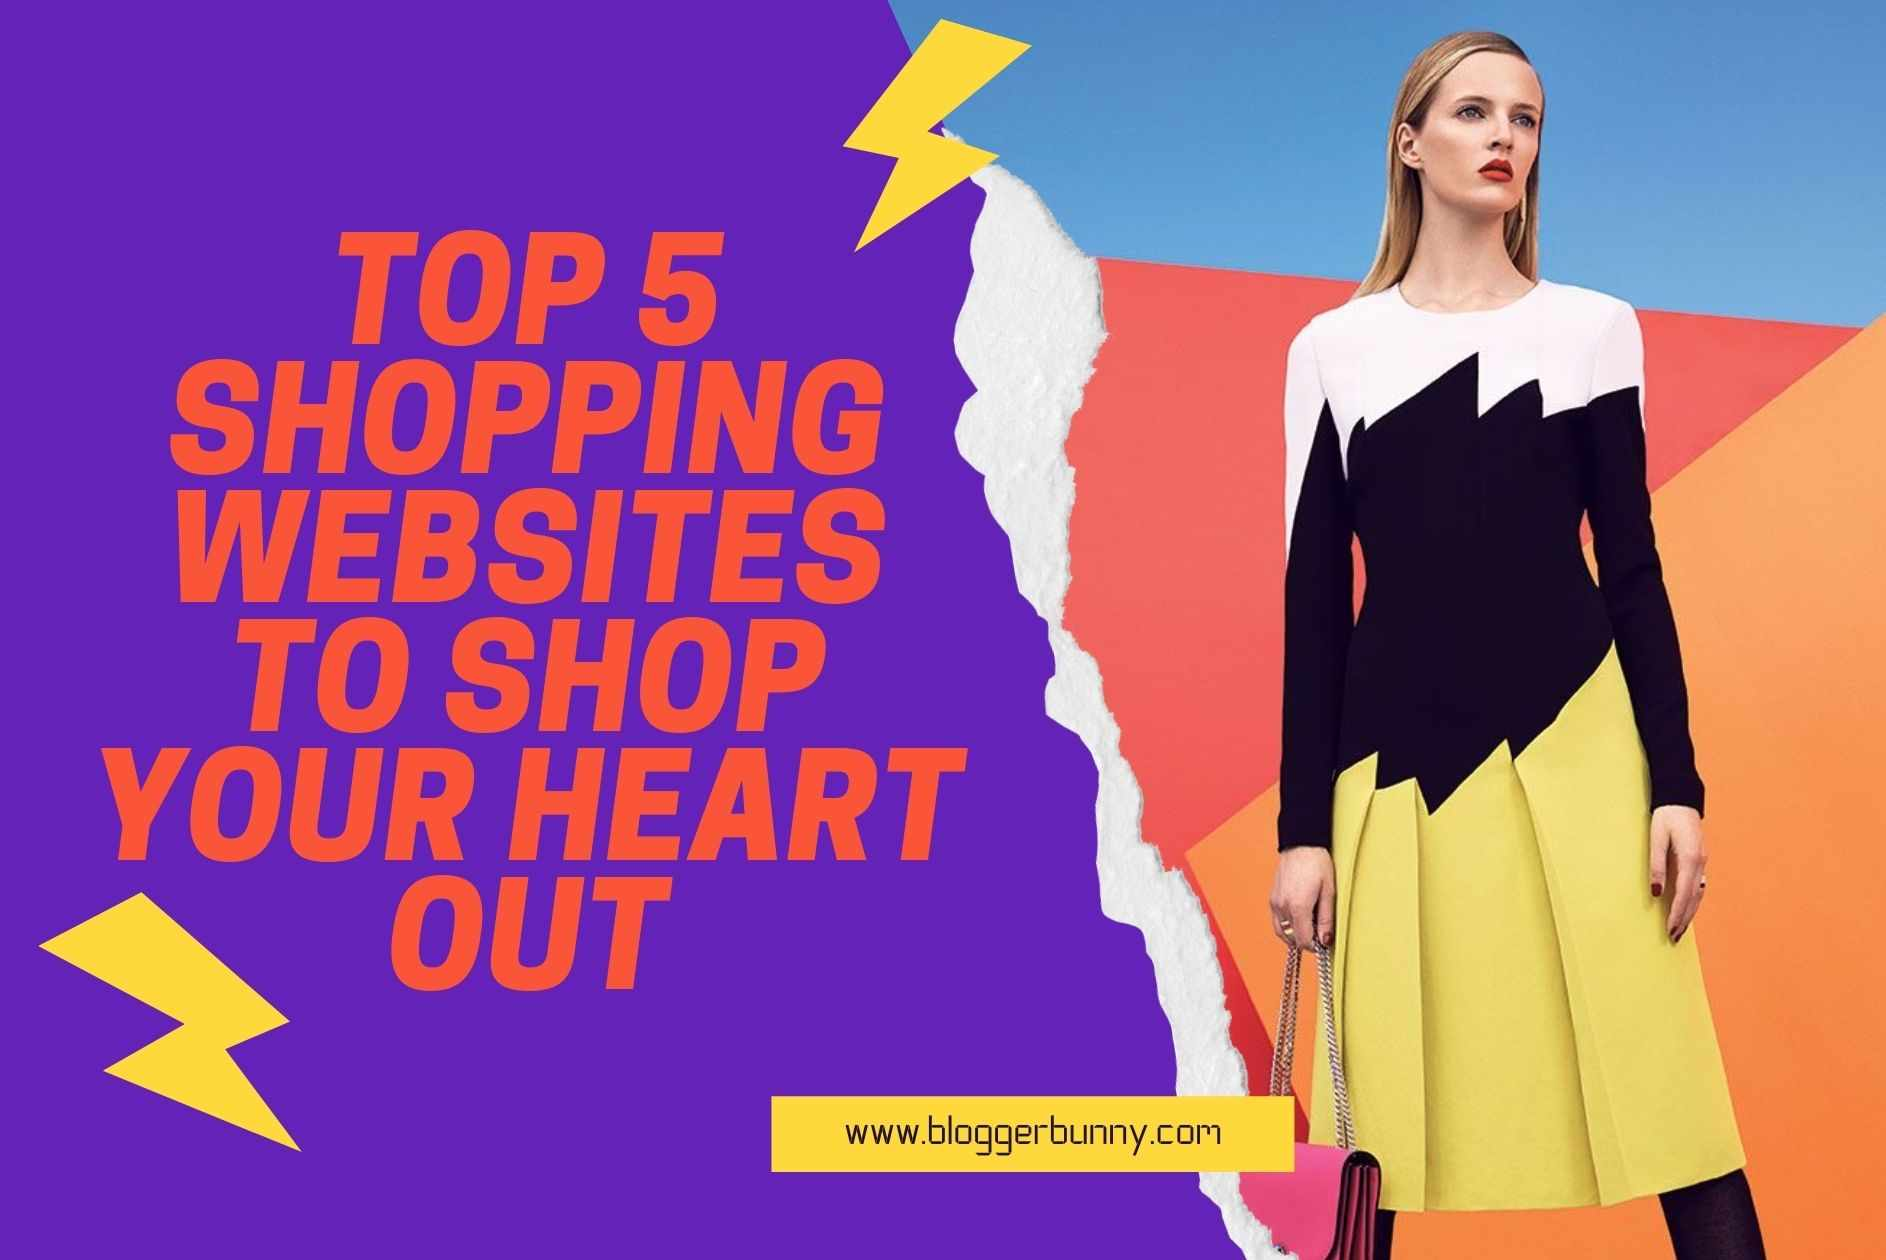 Top 5 Shopping Websites to Shop Your Heart Out